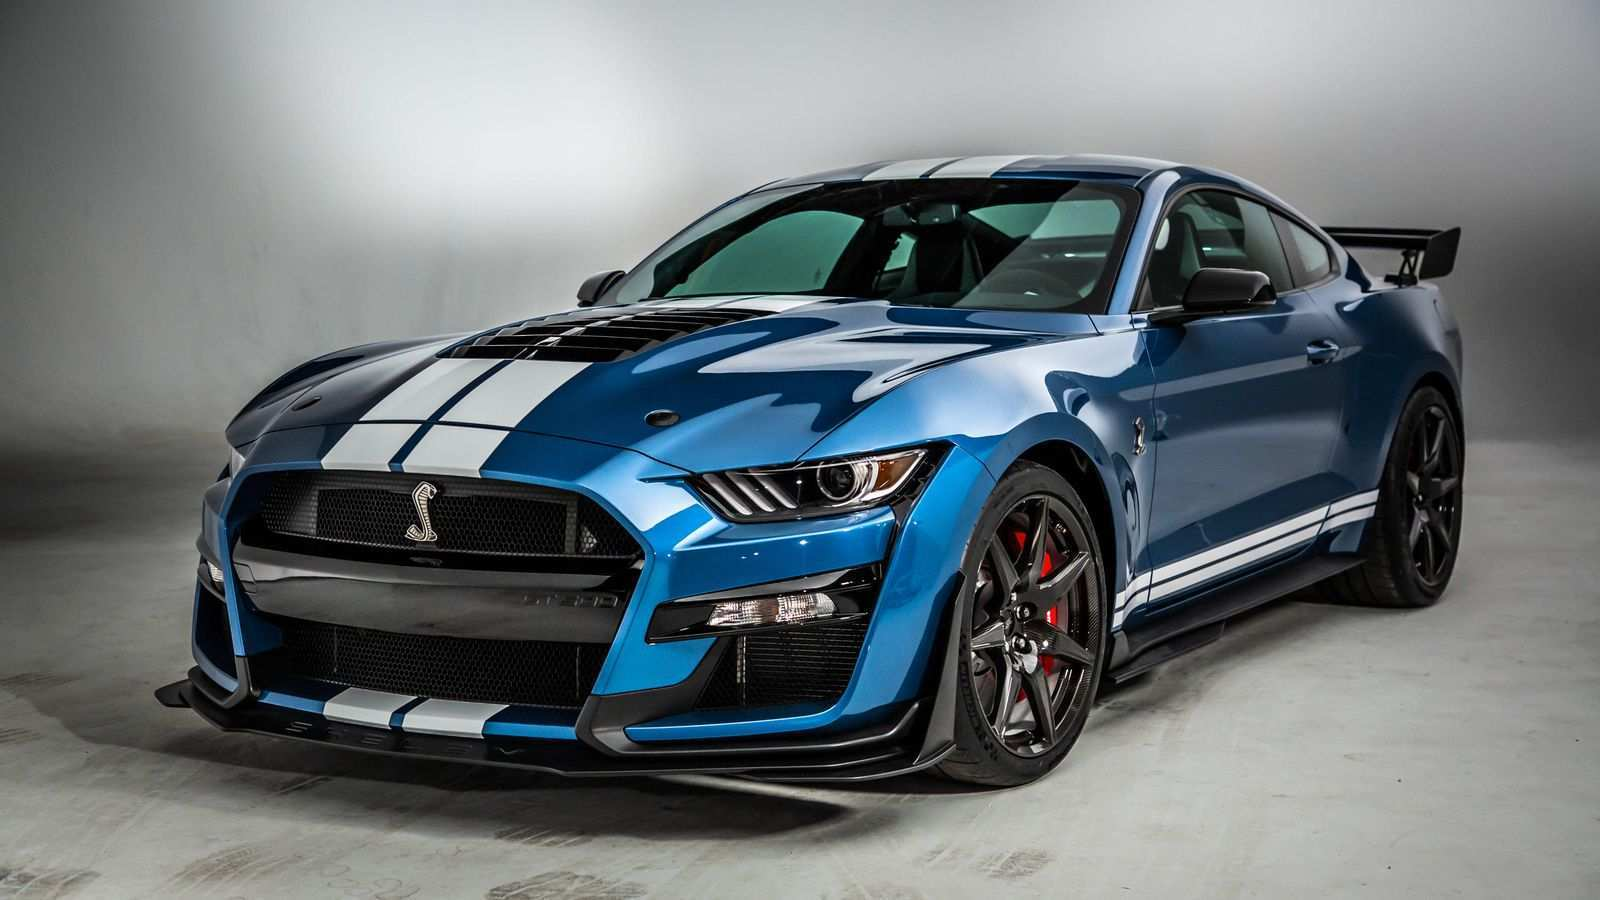 63 Gallery of 2020 Ford Mustang Gt500 Release with 2020 Ford Mustang Gt500